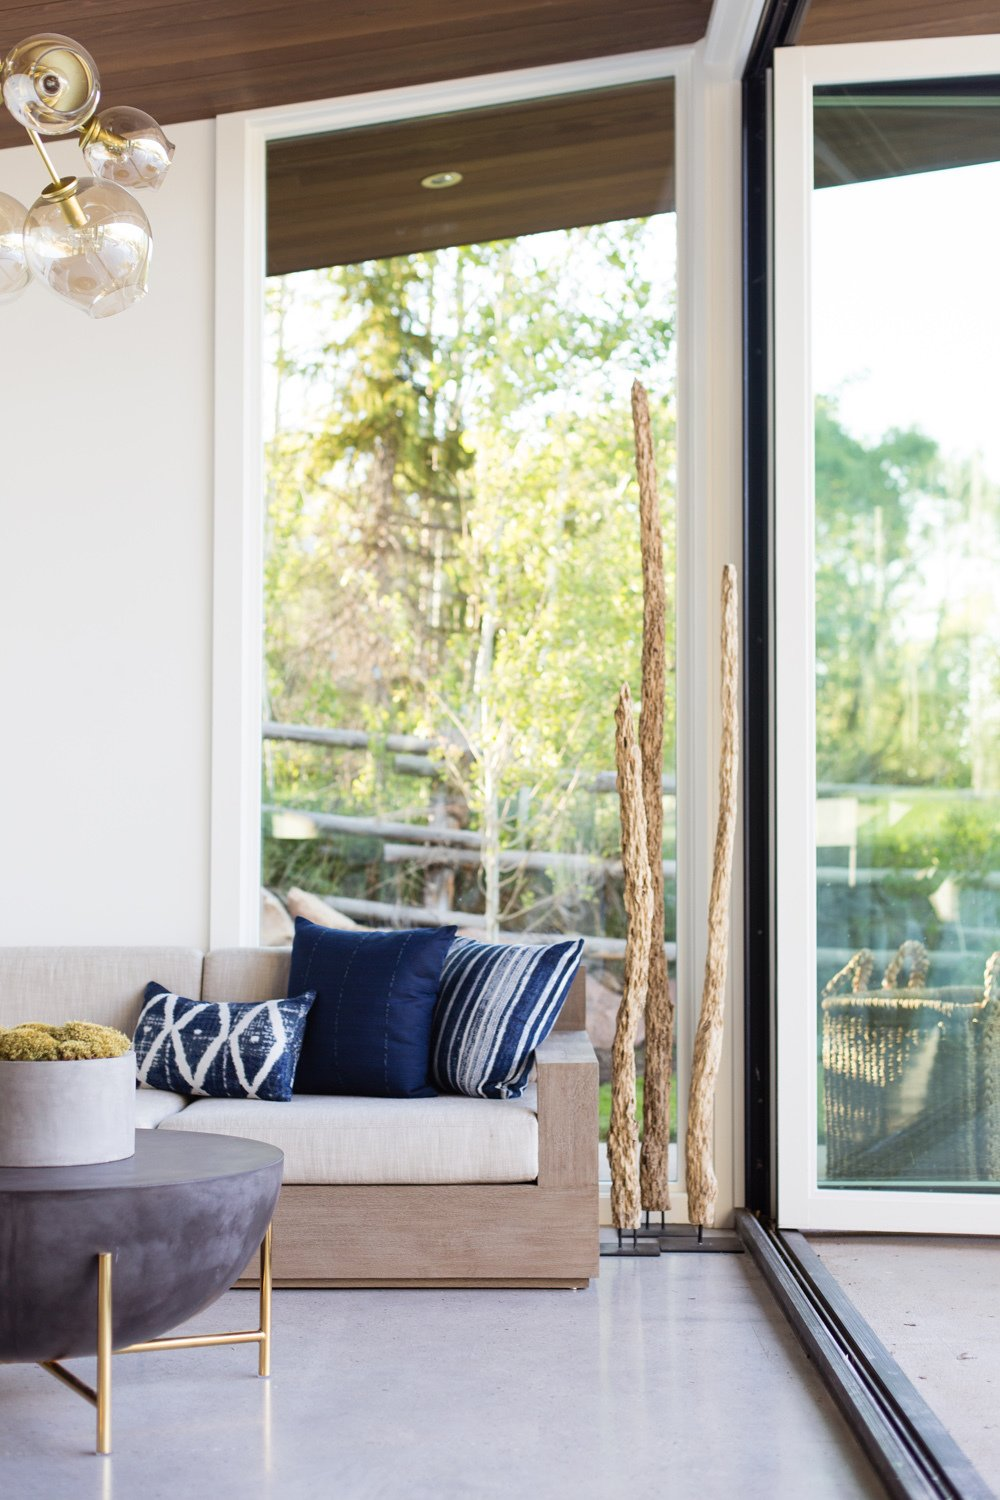 Living Room, Sofa, Ceiling Lighting, and Coffee Tables Brass accents brighten up the multifunctional space.  Photo 10 of 16 in This Can-Do Pool House Cleverly Goes From Private to Party Mode from Modern Mountain Pool House